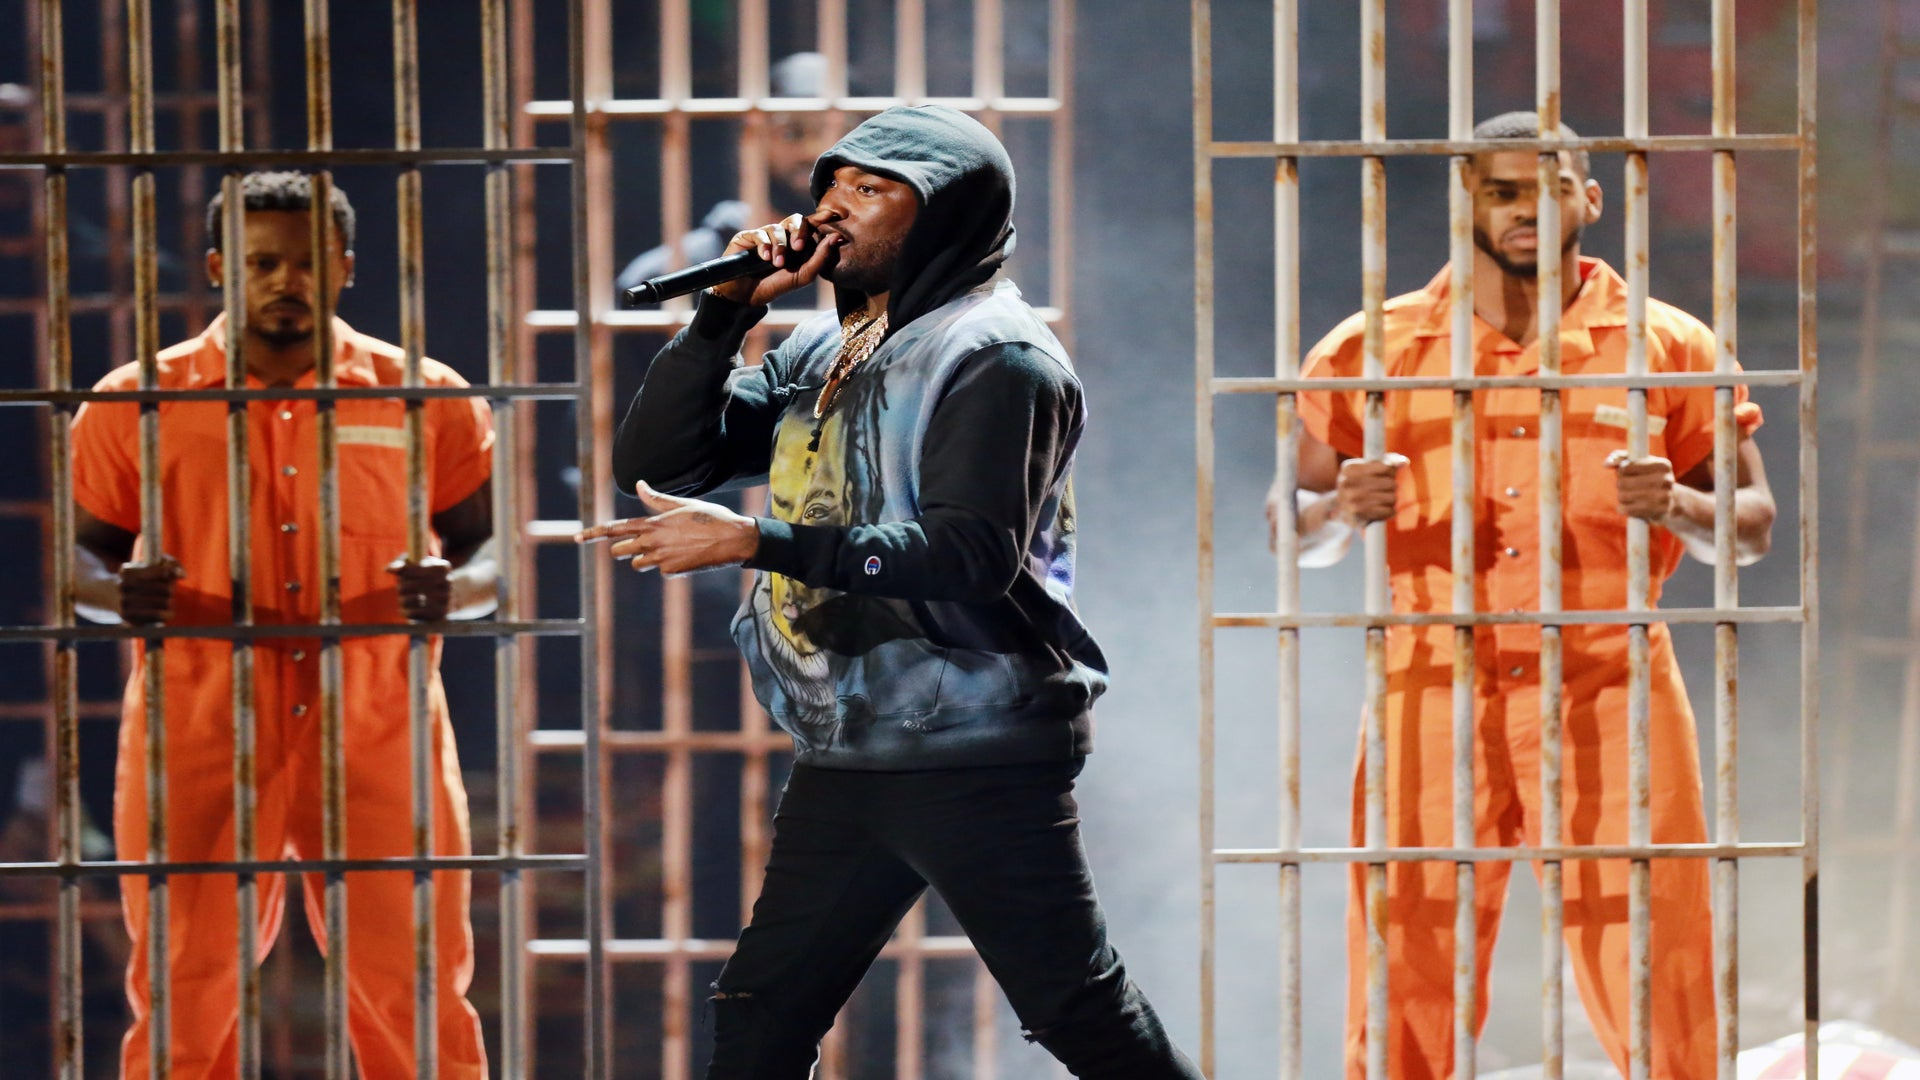 Meek Mill Addresses Racism, Gun Violence and Social Injustice With A Powerful Performance at The BET Awards